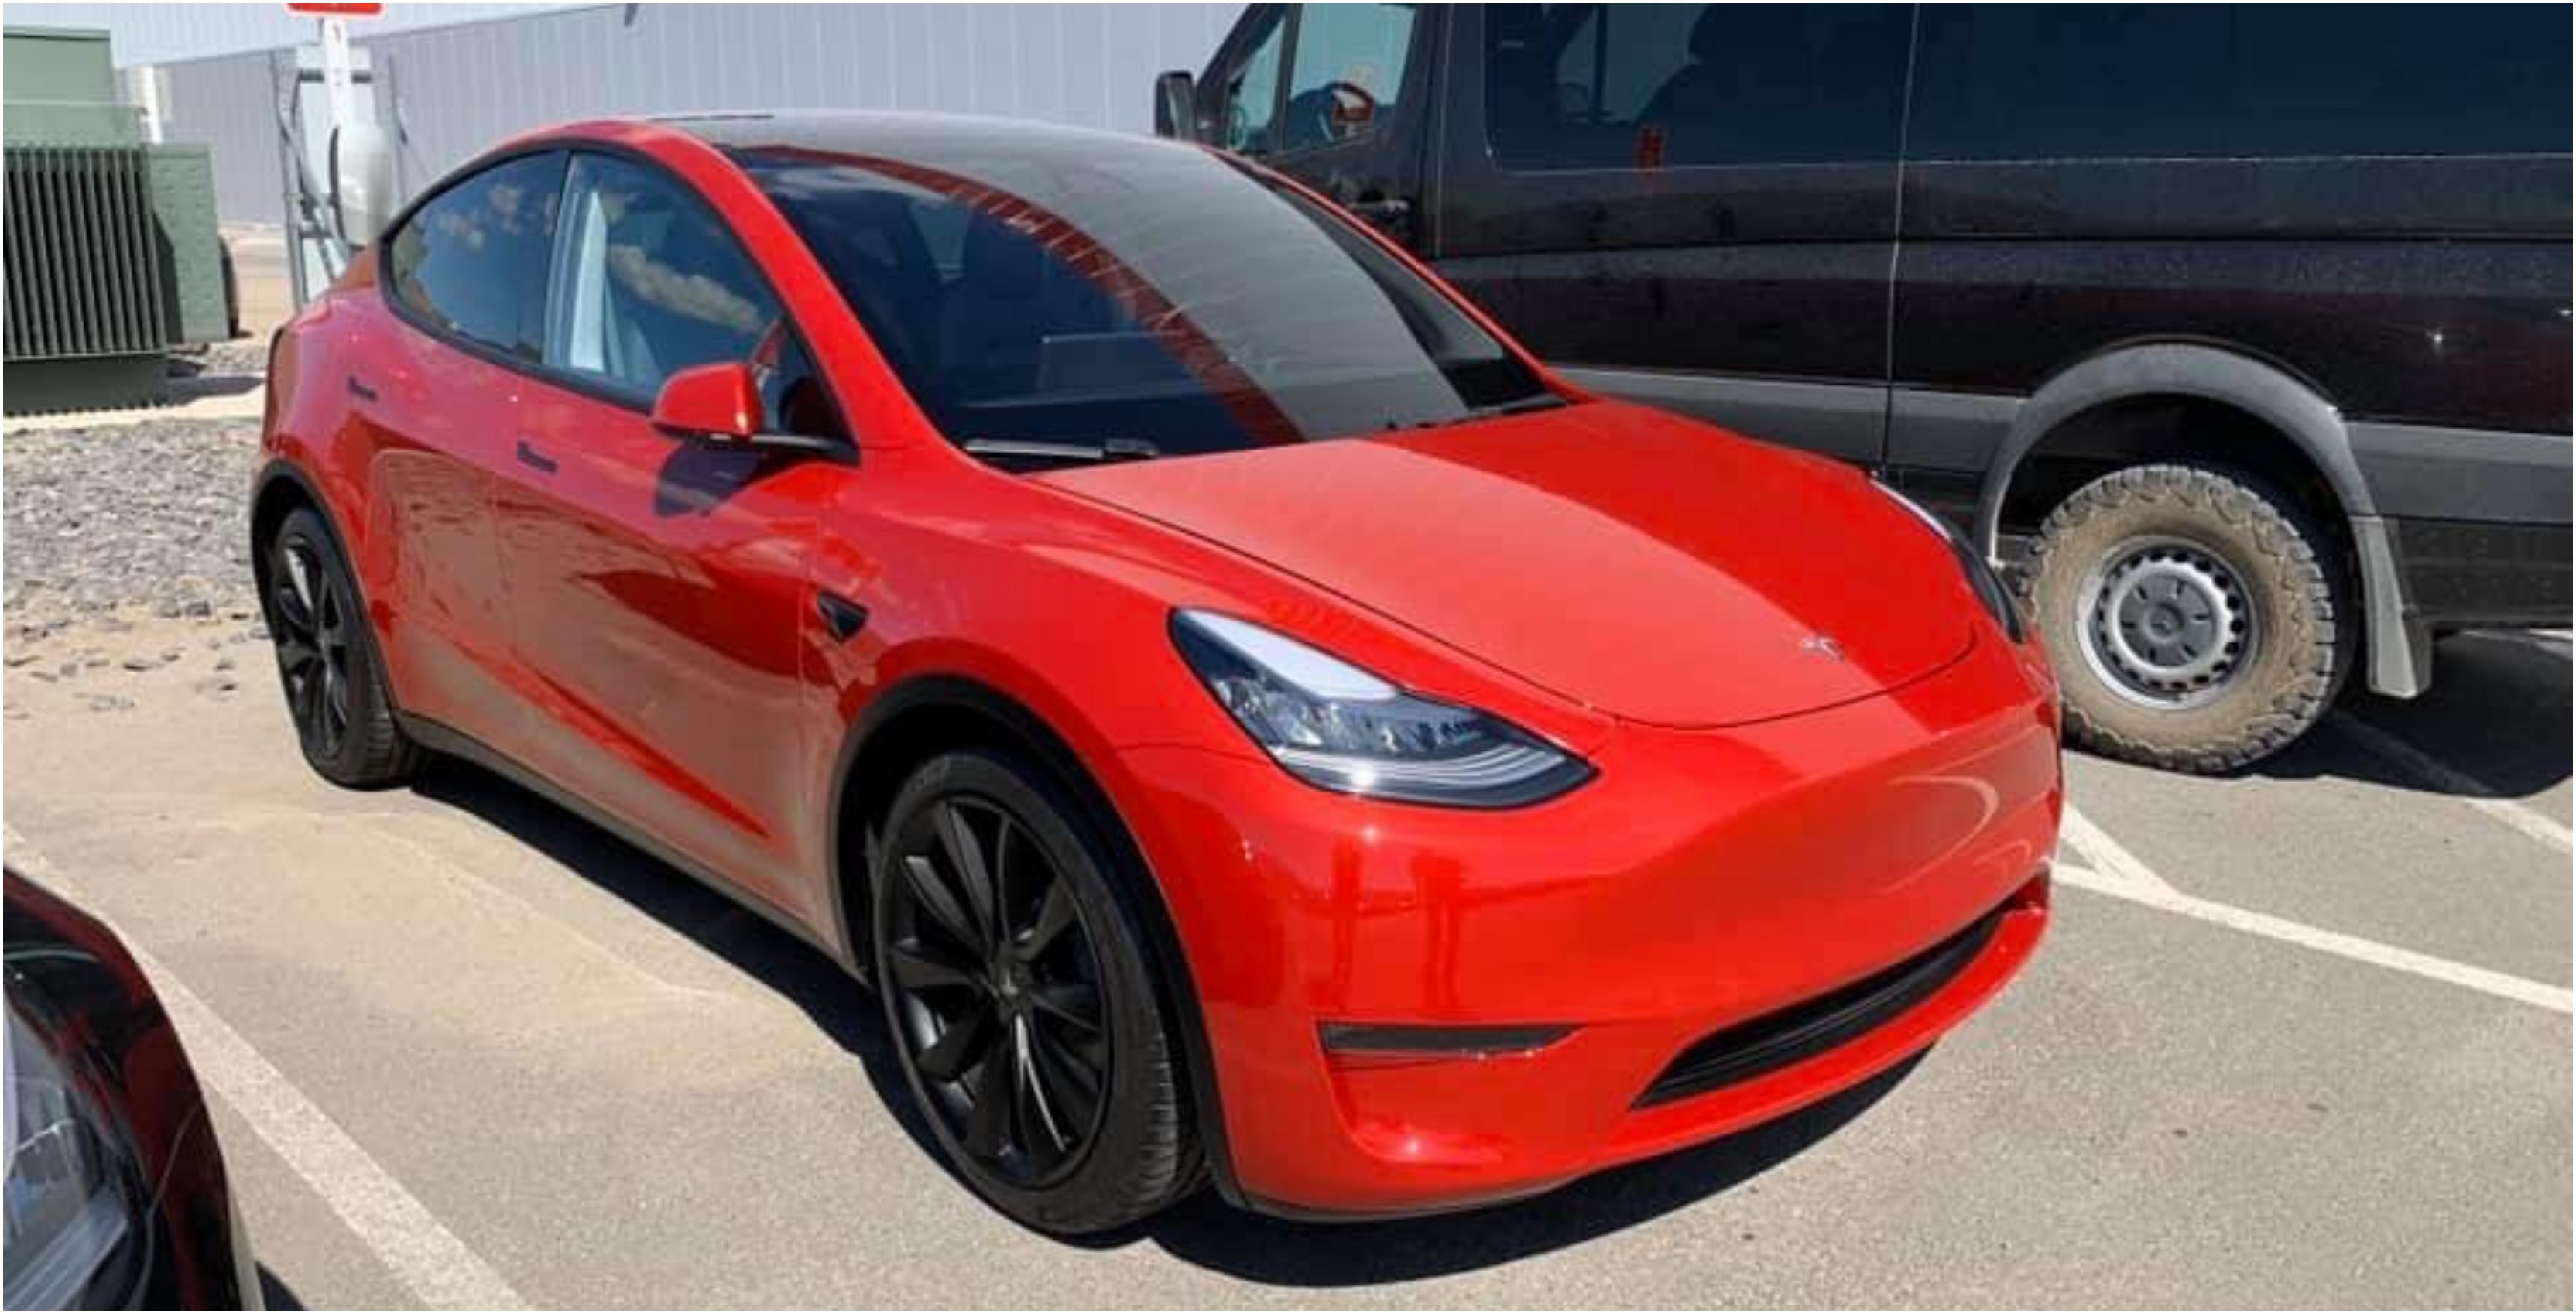 Images of Tesla's Model Y prototype in red surface online